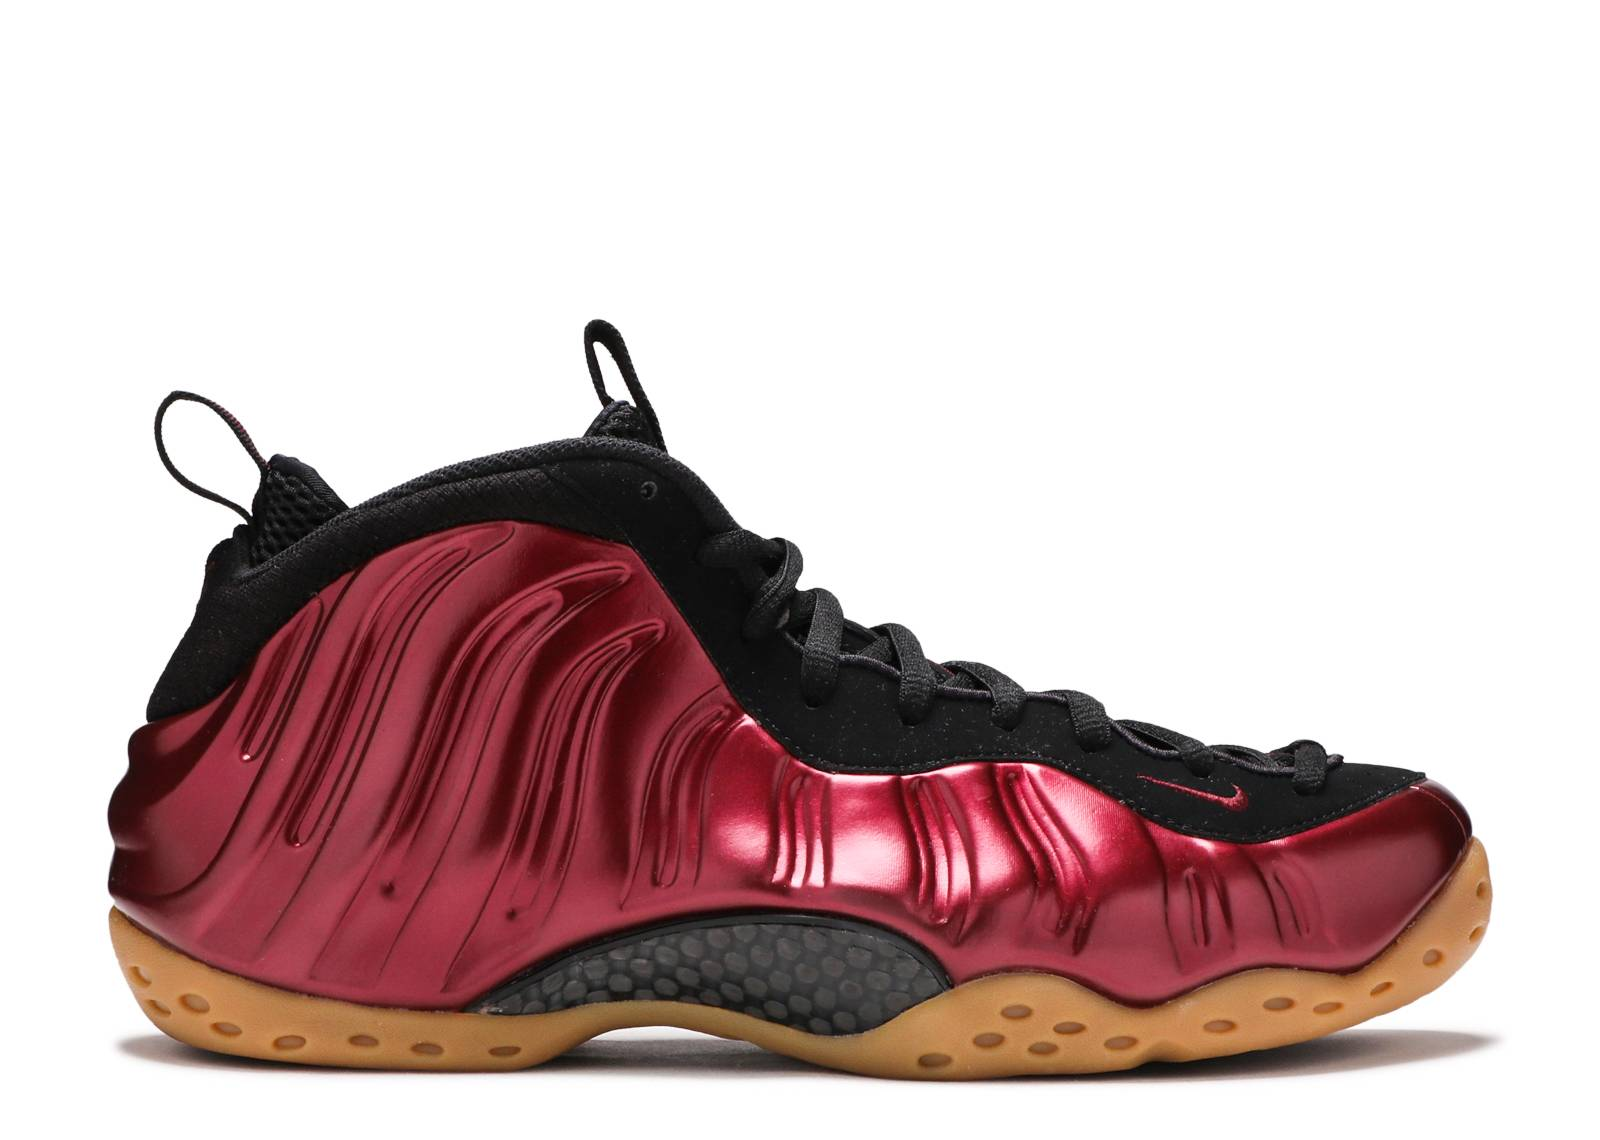 efaf26c184d Air Foamposite One - Nike - 314996 601 - night maroon night maroon ...